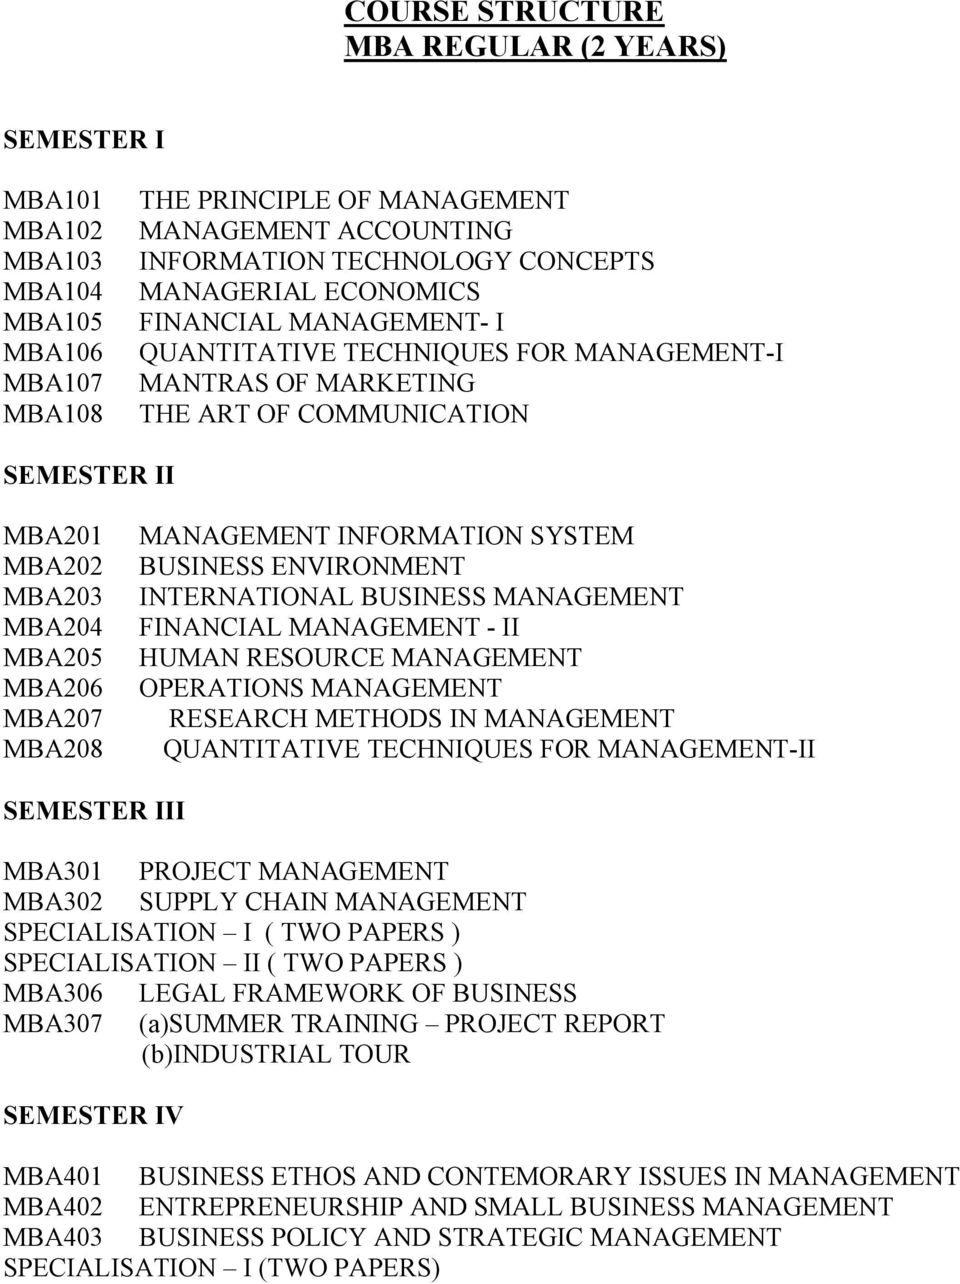 INFORMATION SYSTEM BUSINESS ENVIRONMENT INTERNATIONAL BUSINESS MANAGEMENT FINANCIAL MANAGEMENT - II HUMAN RESOURCE MANAGEMENT OPERATIONS MANAGEMENT RESEARCH METHODS IN MANAGEMENT QUANTITATIVE